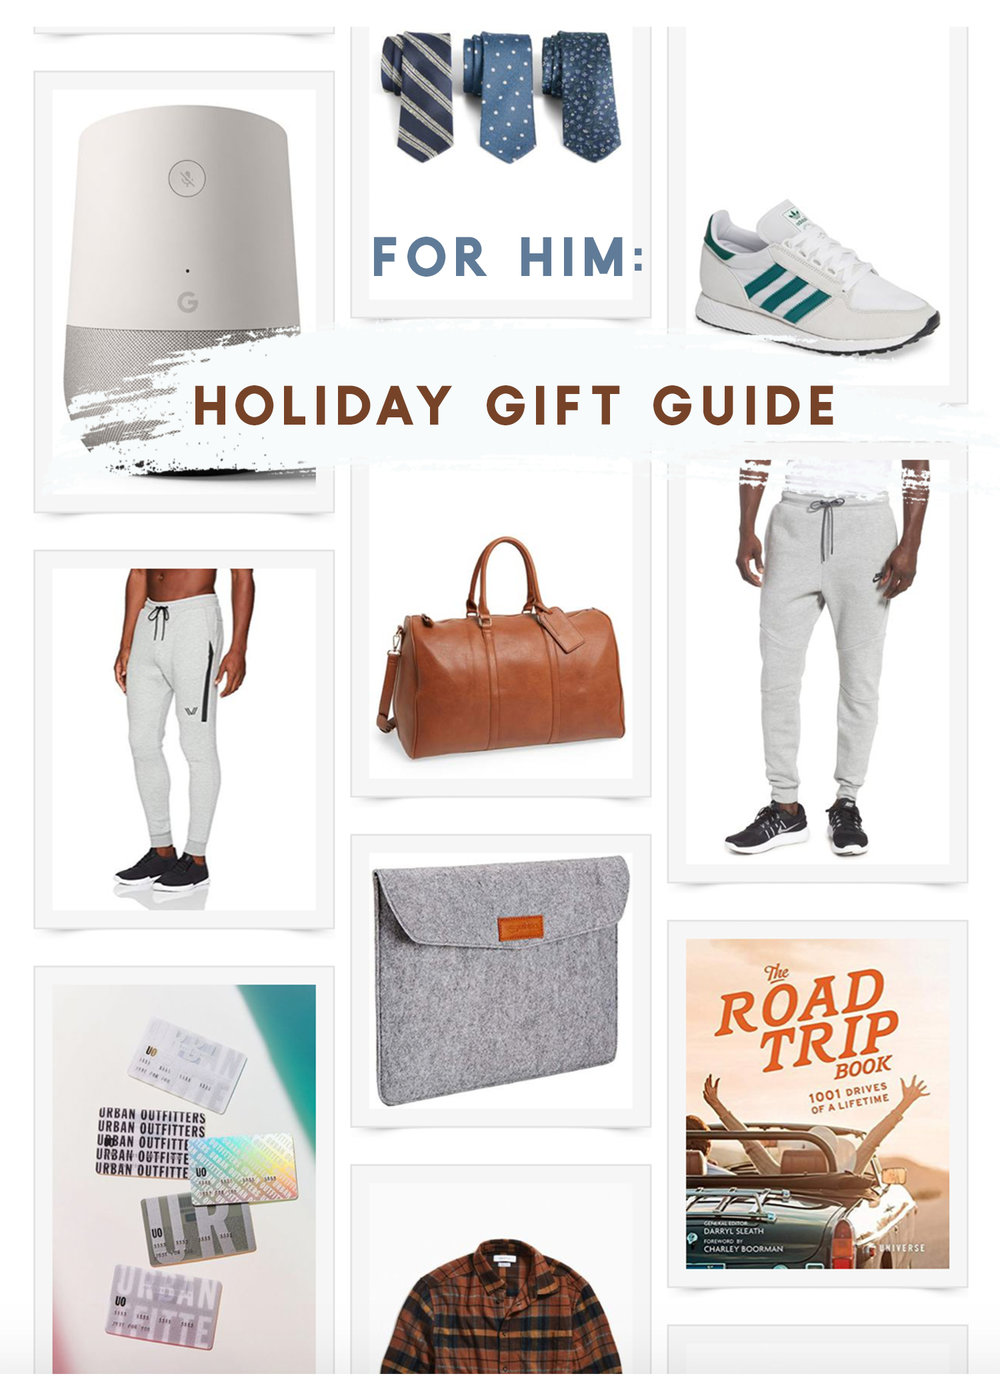 HOLIDAY GIFT GUIDE: FOR HIM -